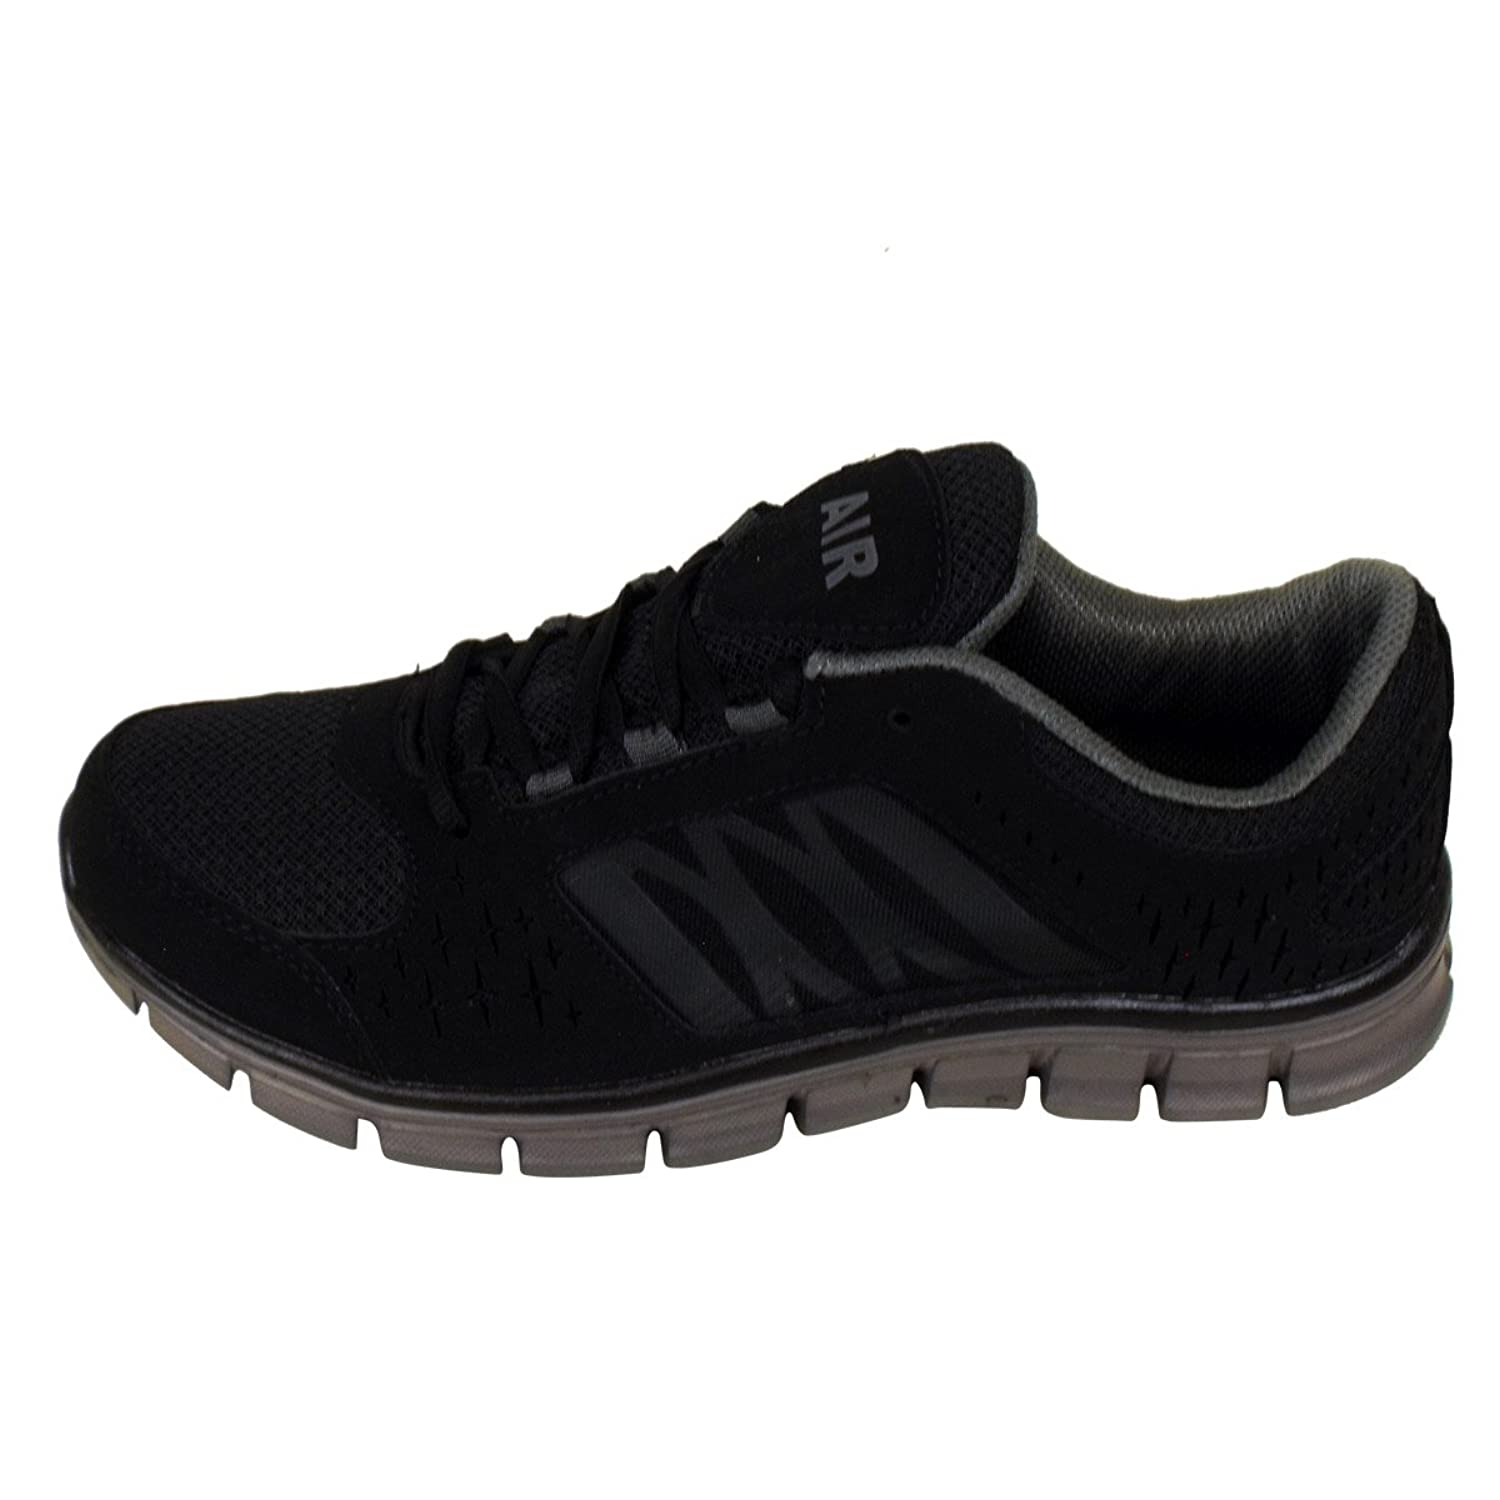 Mens Shock Absorbing Running Trainers Jogging Gym Fitness Trainer Shoe UK 7:  Amazon.co.uk: Shoes & Bags